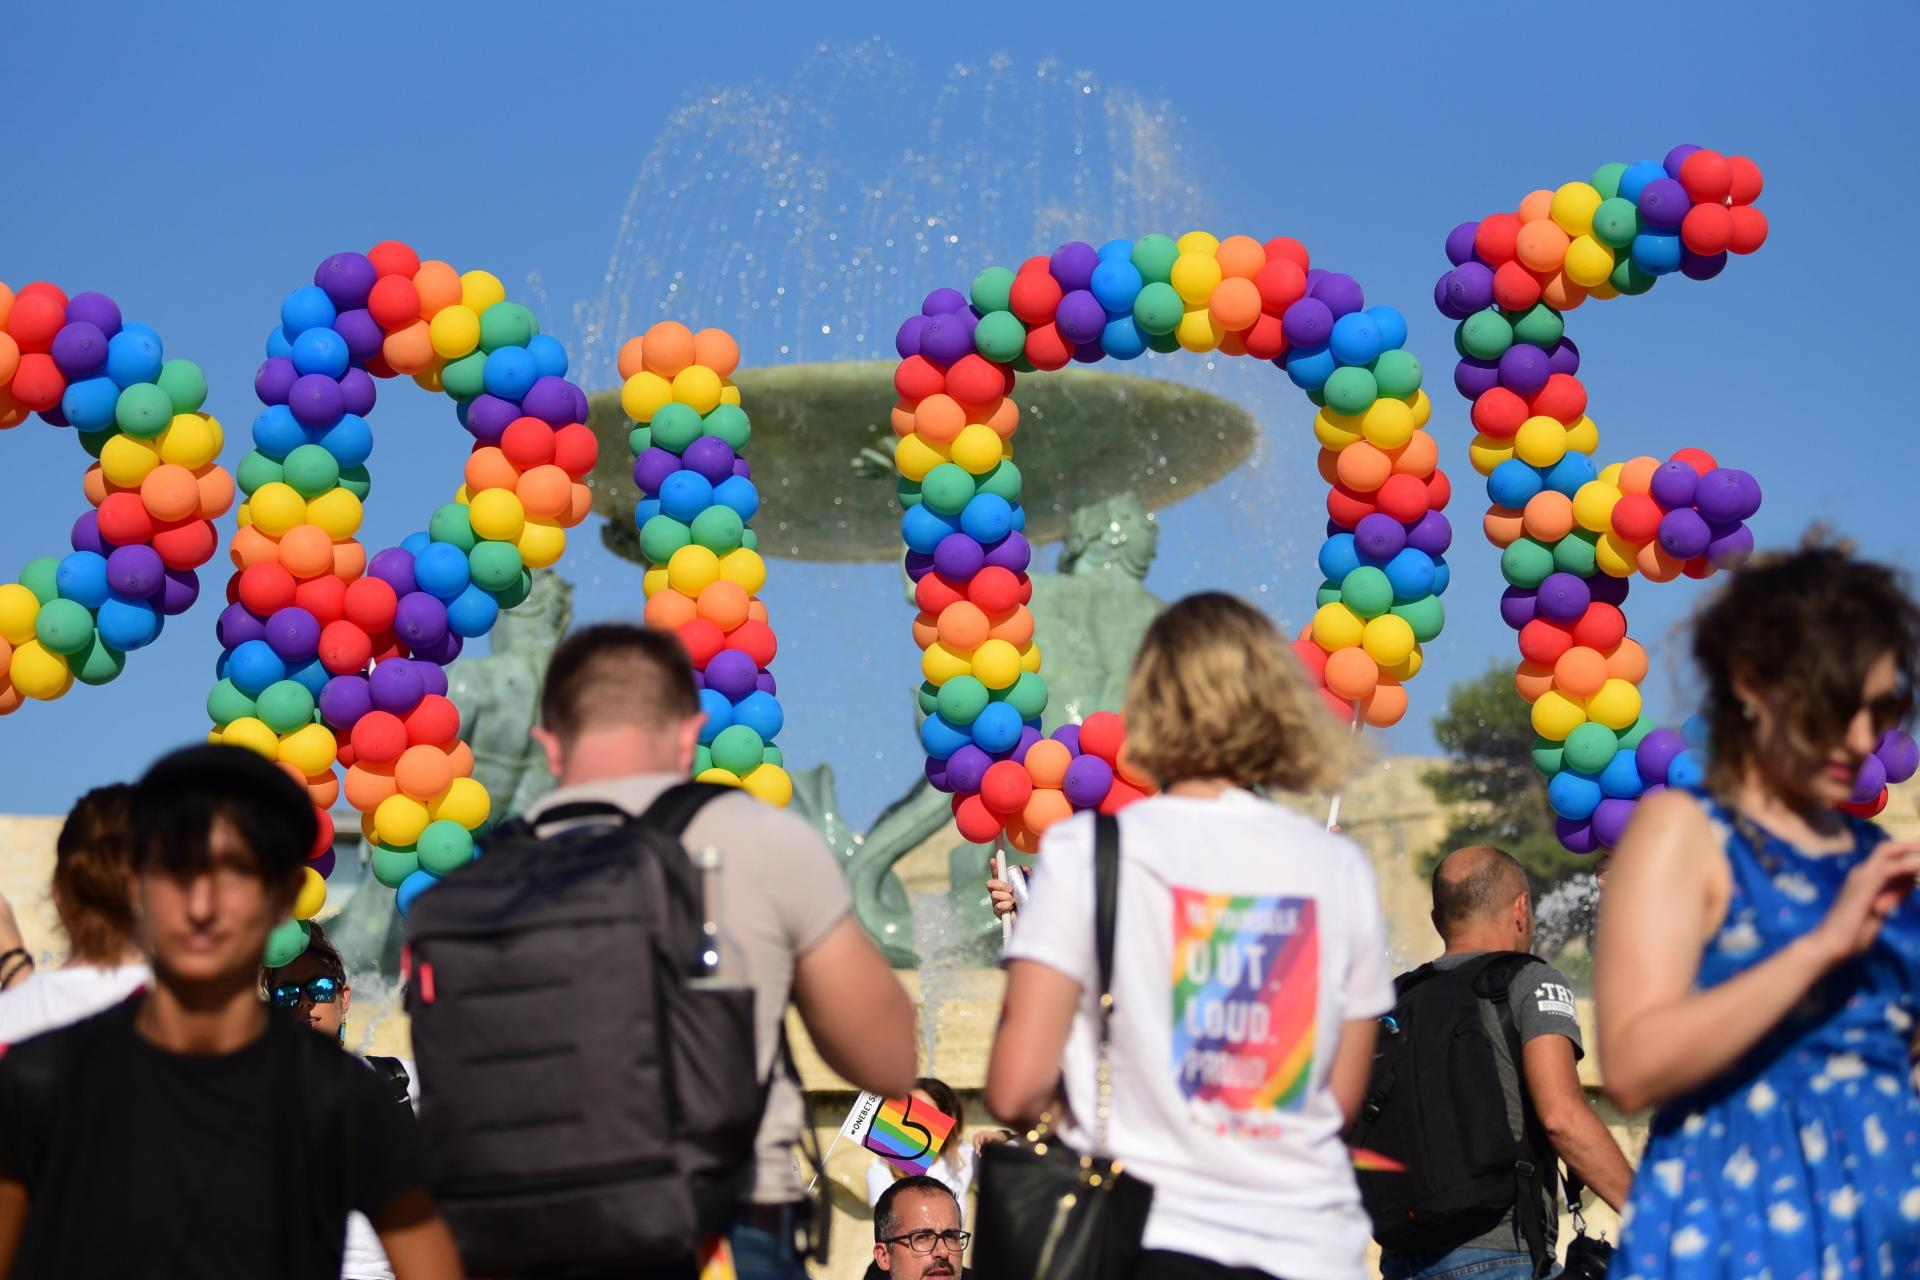 Malta bids to host Europe's largest gay pride event in 2023